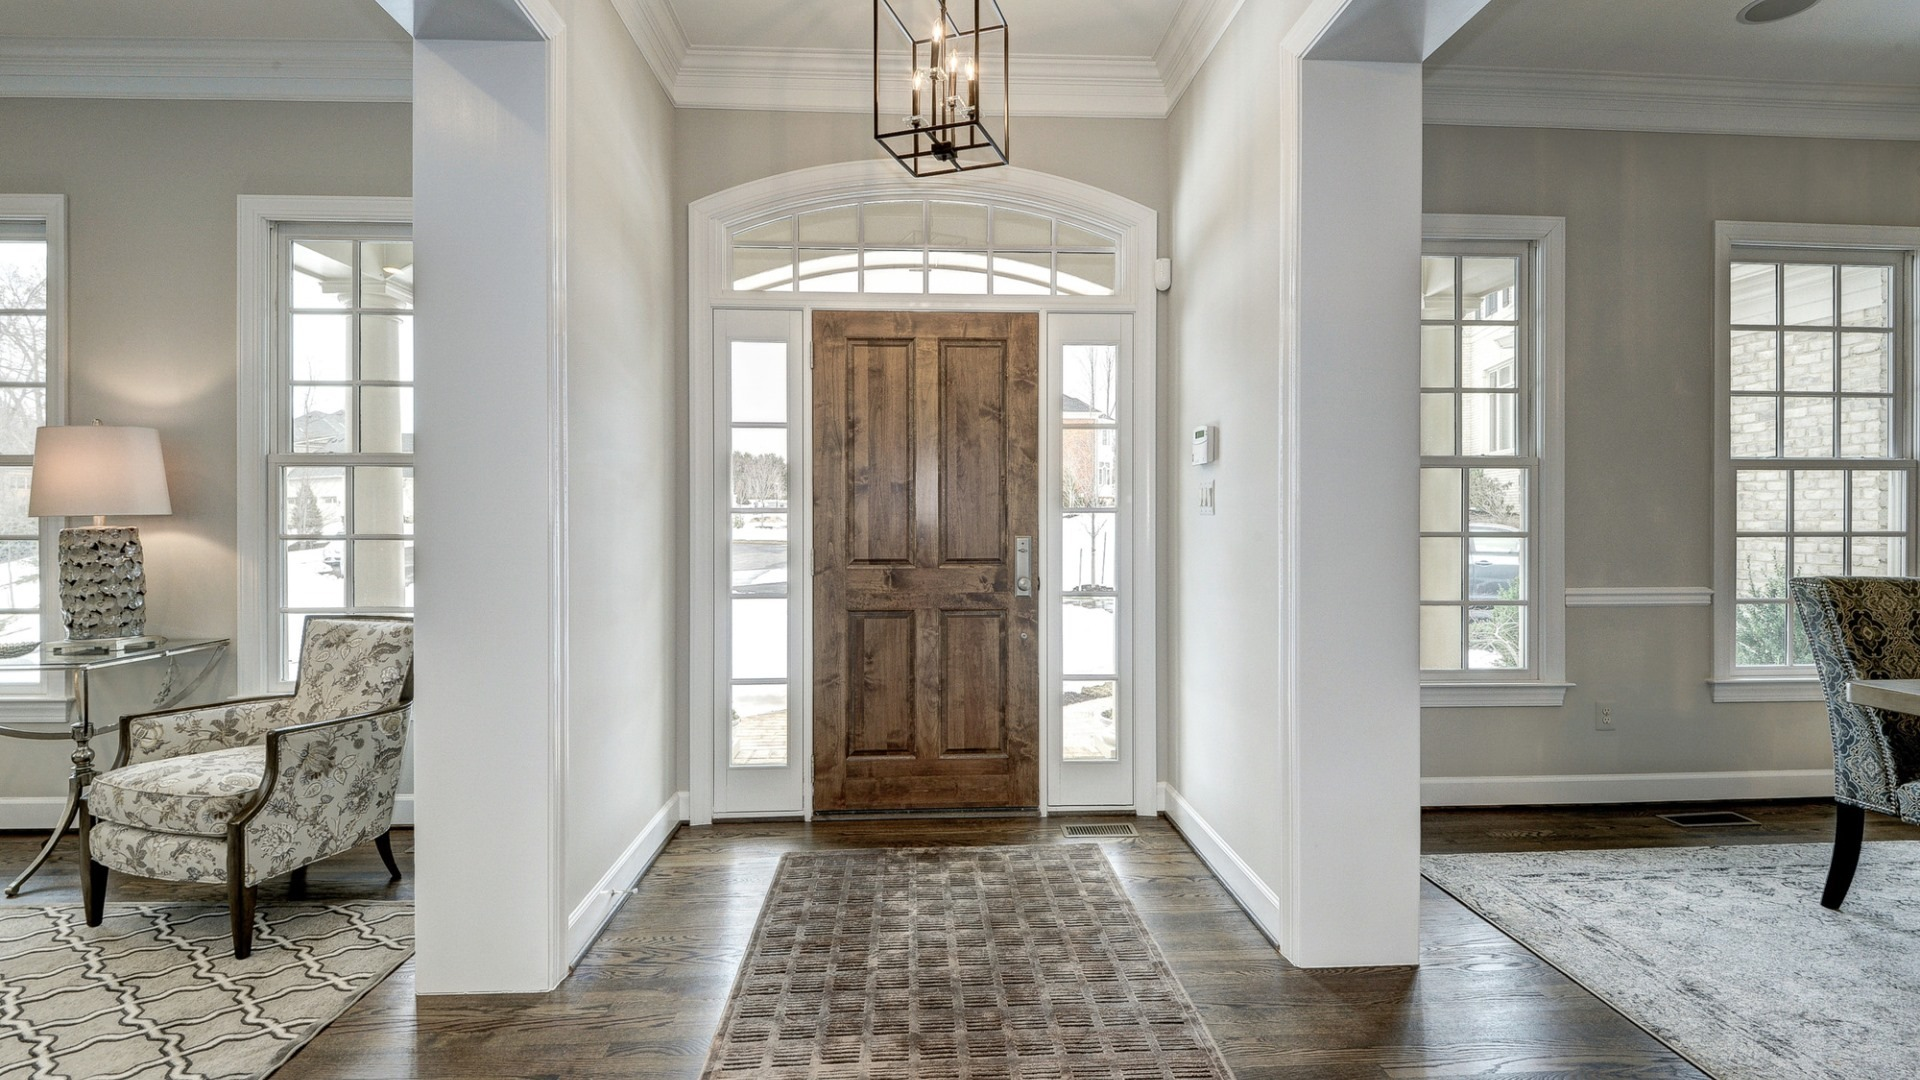 The foyer in a Grayson former model home, which may vary somewhat from the home planned at Vale Crest Homesite 5. Some optional features shown. Please see sales manager for details.